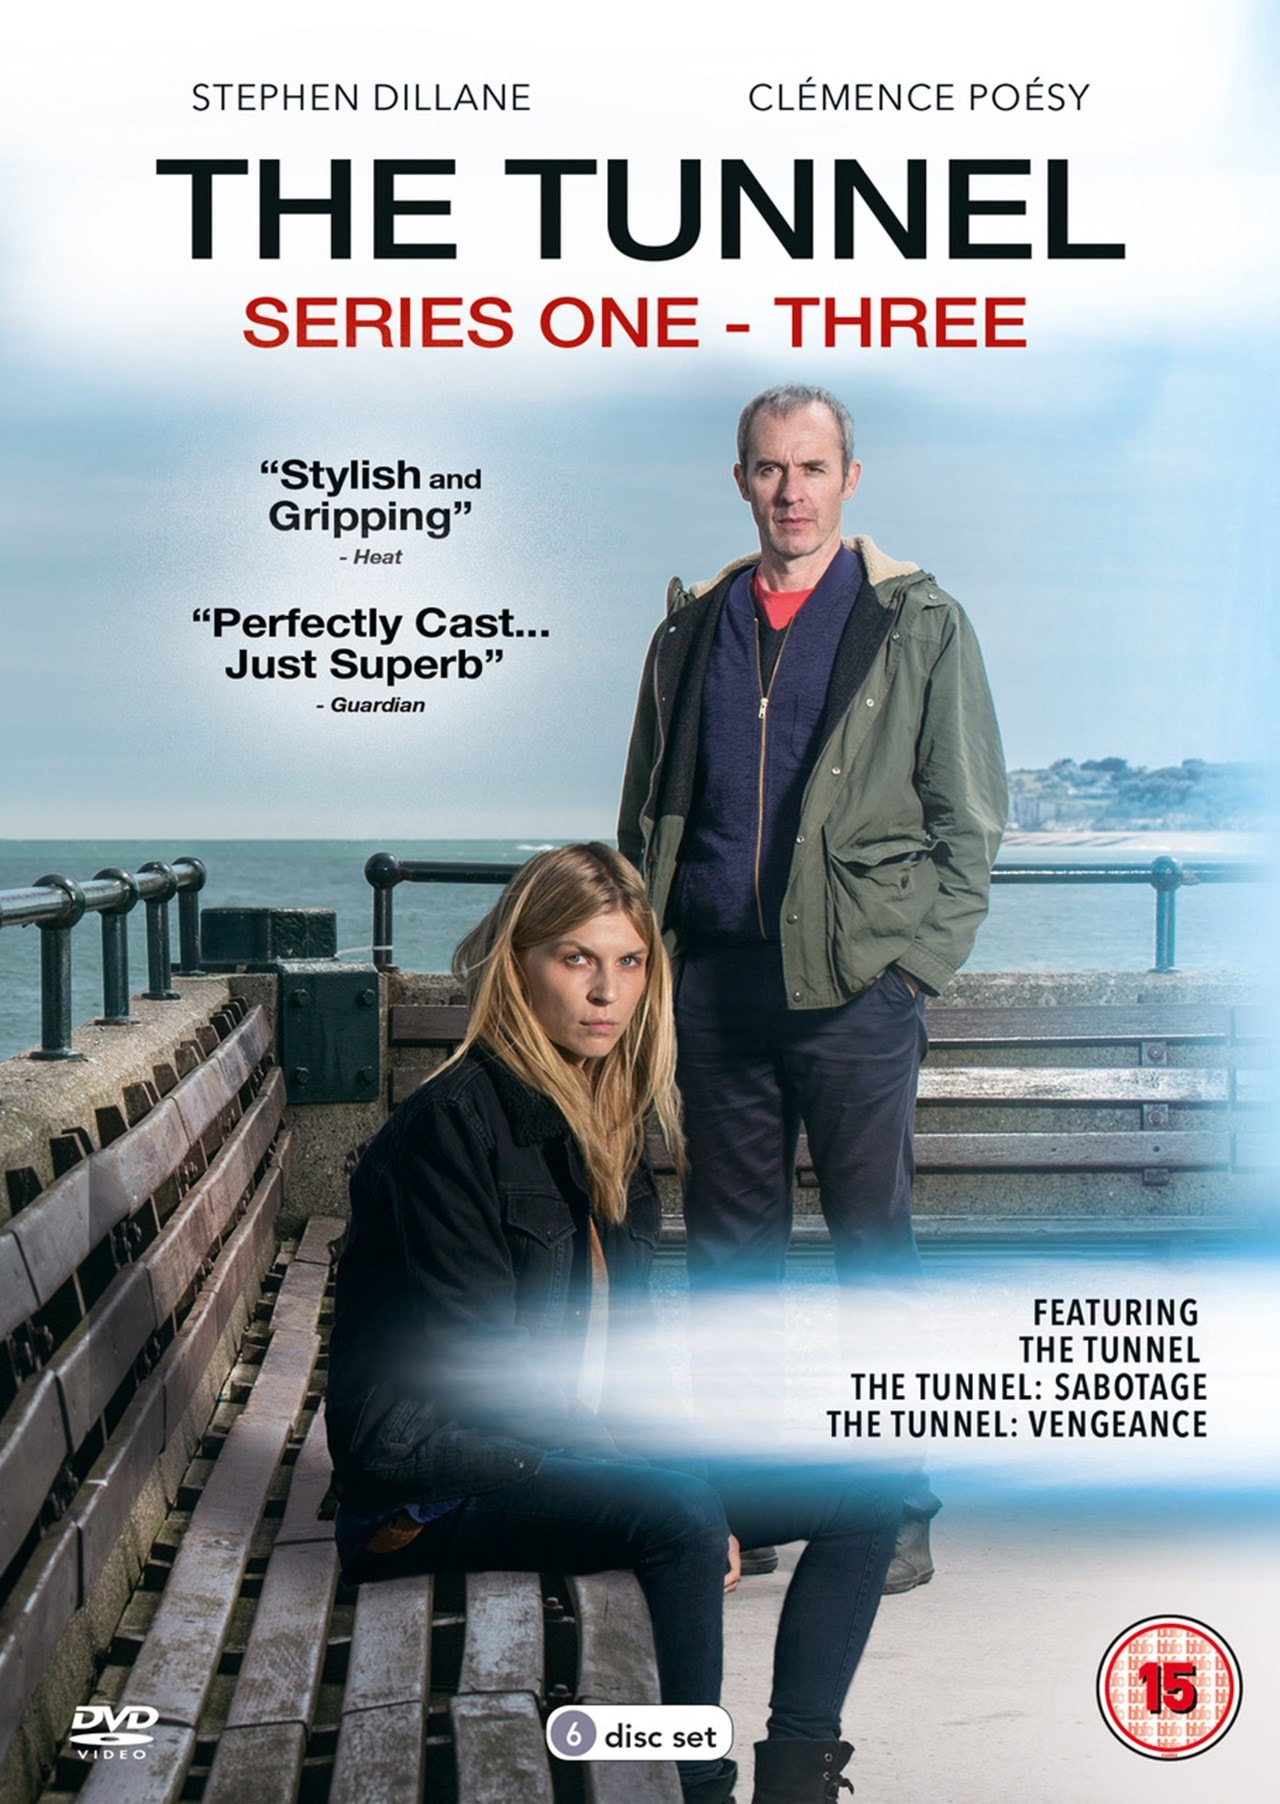 The Tunnel: Series 1 to 3 - 1